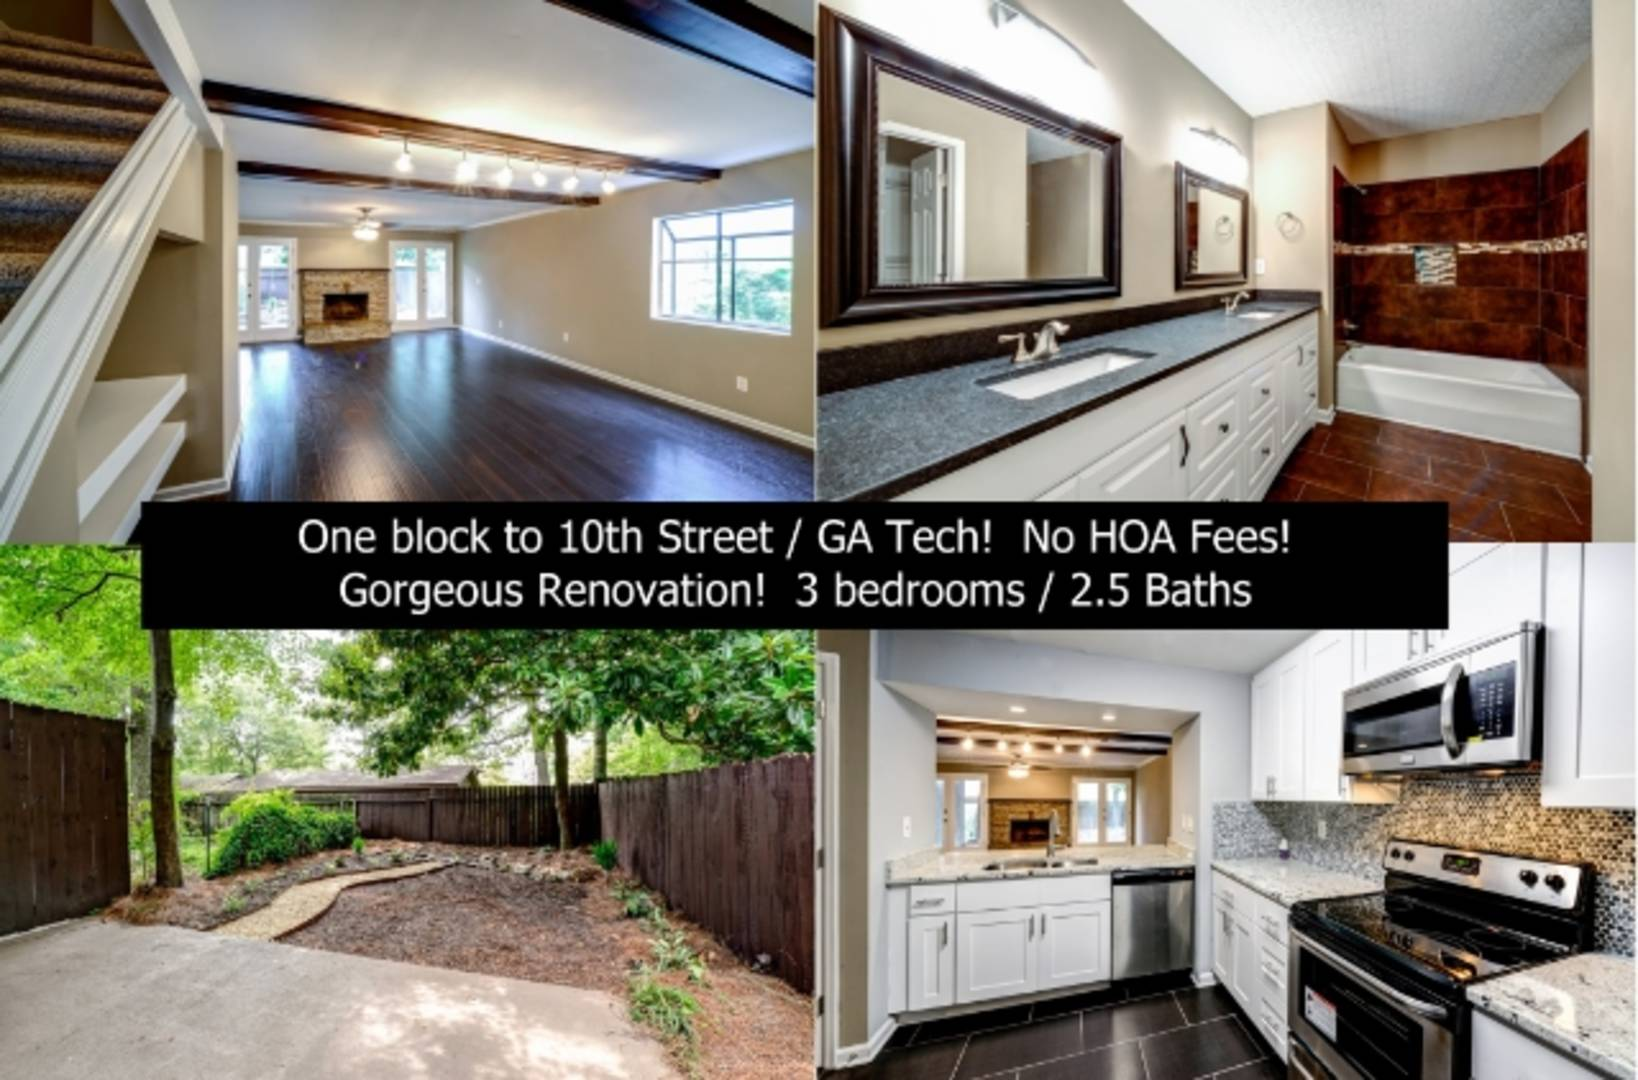 56 334 Home Park Ave Nw Atlanta Ga 30318